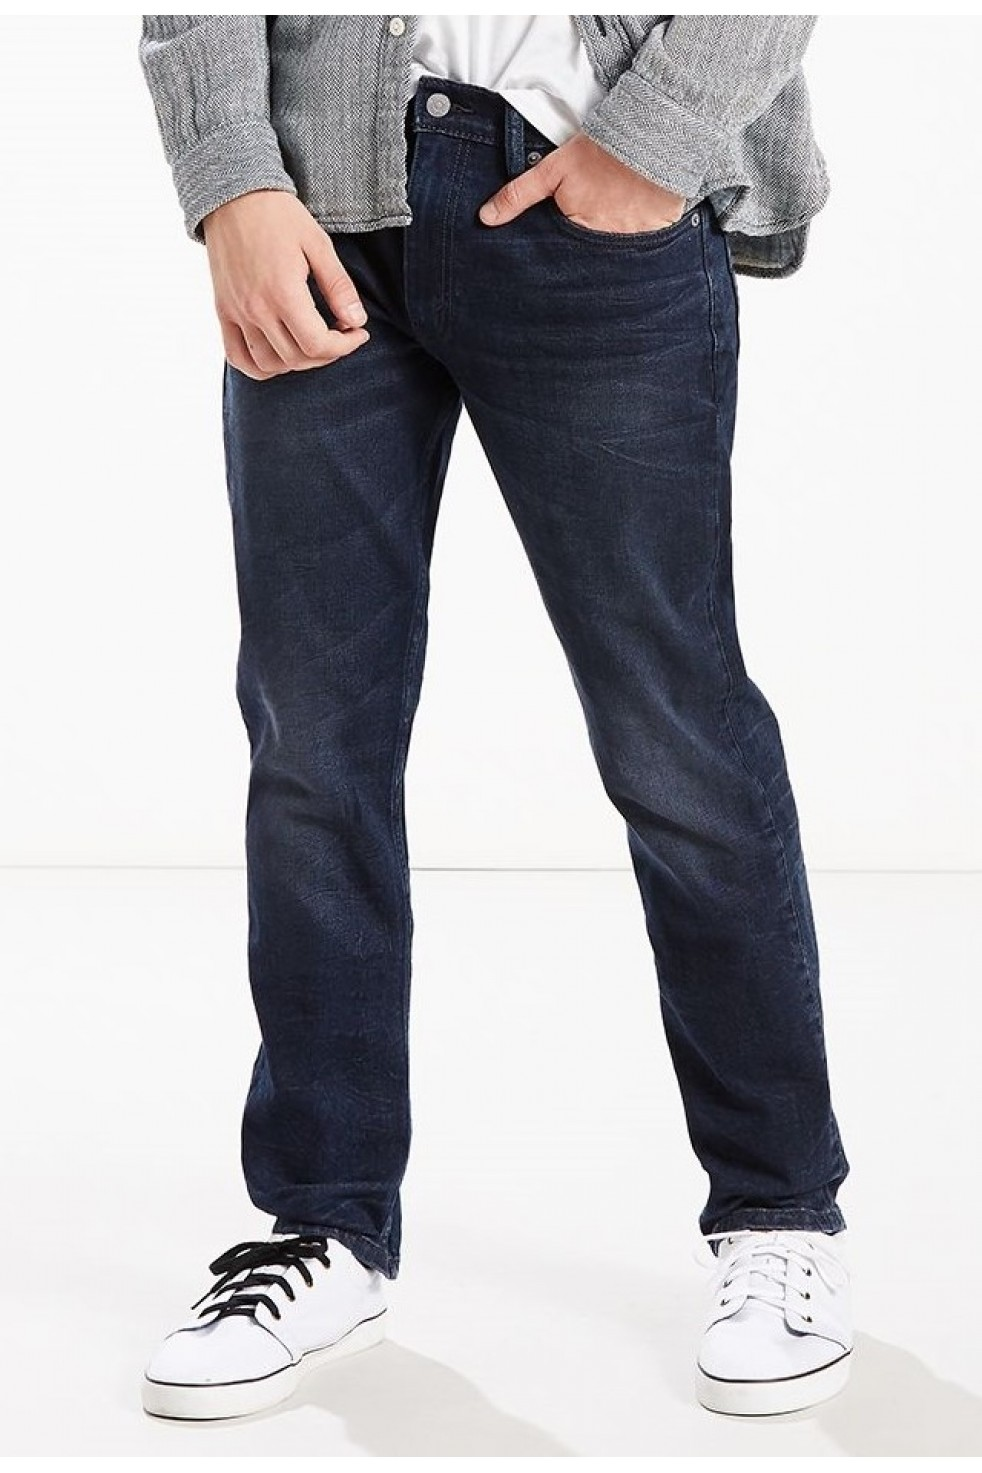 Levis Erkek Jean Pantolon 512 Slim Taper Fit  28833-0056